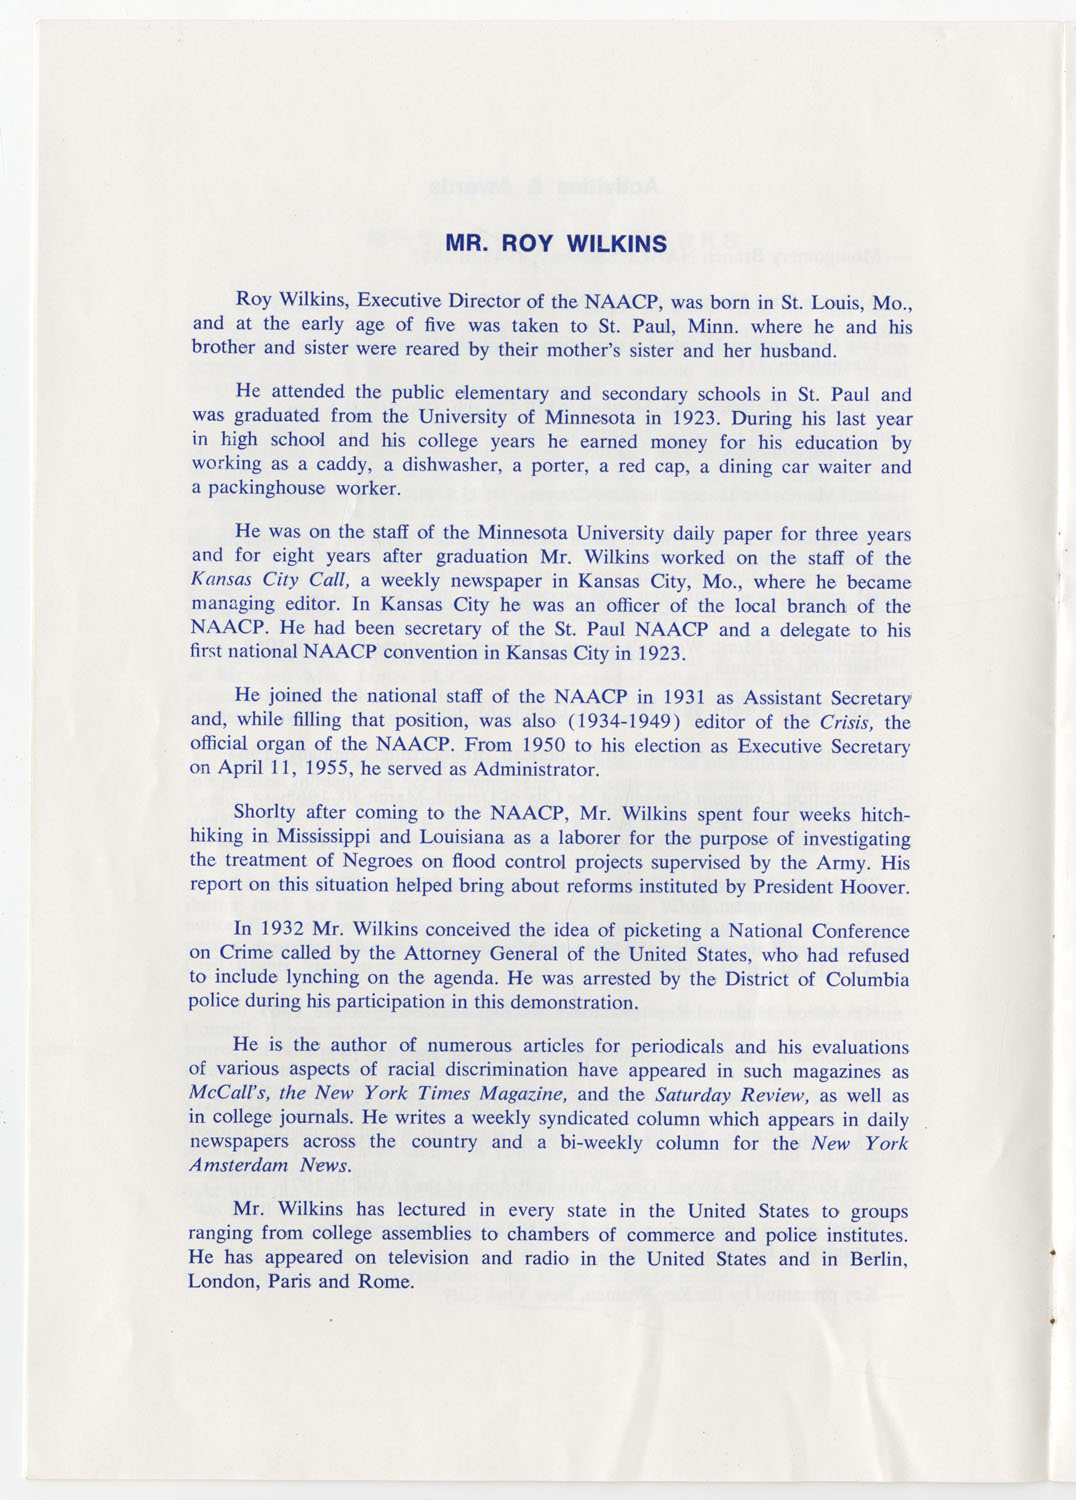 Program to the Utility Club, Inc., Bicentennial Luncheon, Page 5